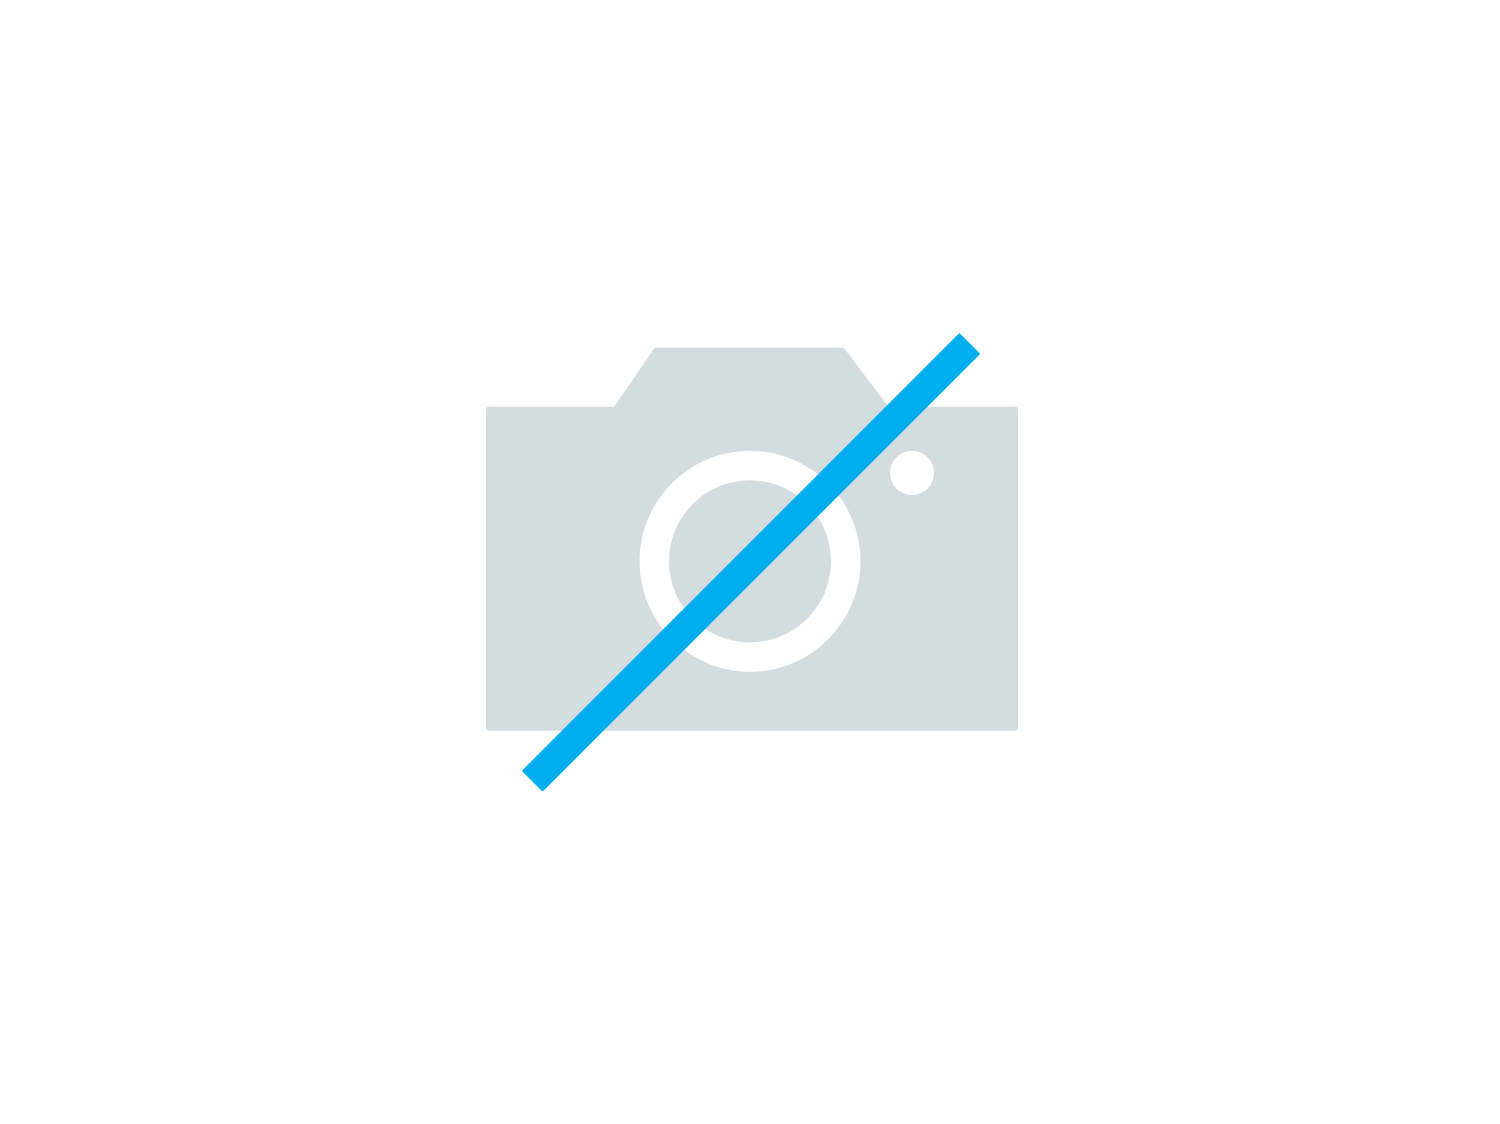 Relaxzetel Citizen lederlook grijs. In stock. Fauteuil relax Citizen similicuir  gris 2f070536f3ef